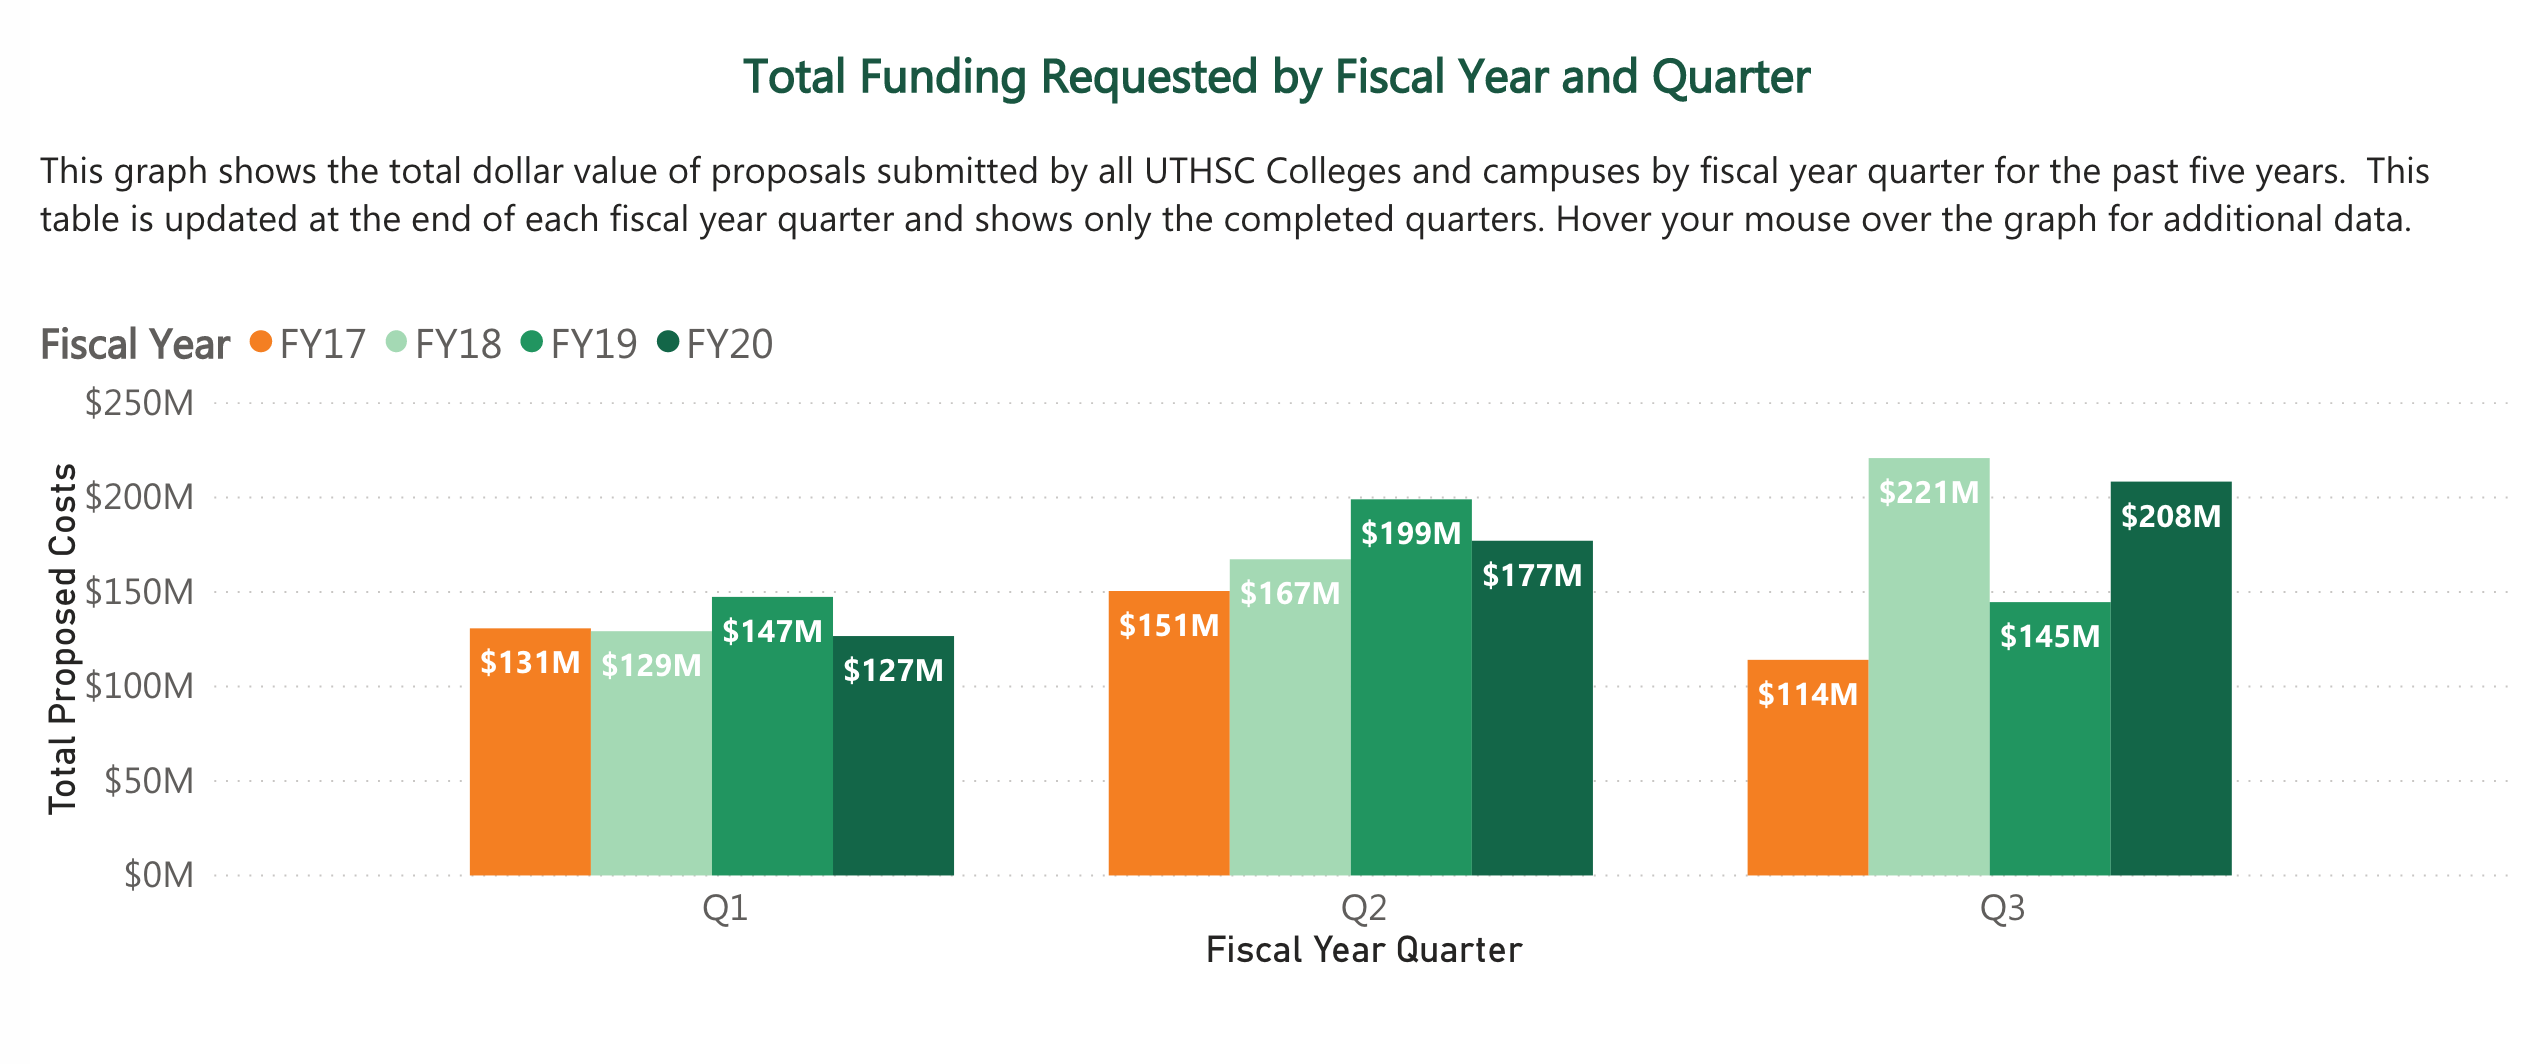 Total funding requested by fiscal year and quarter